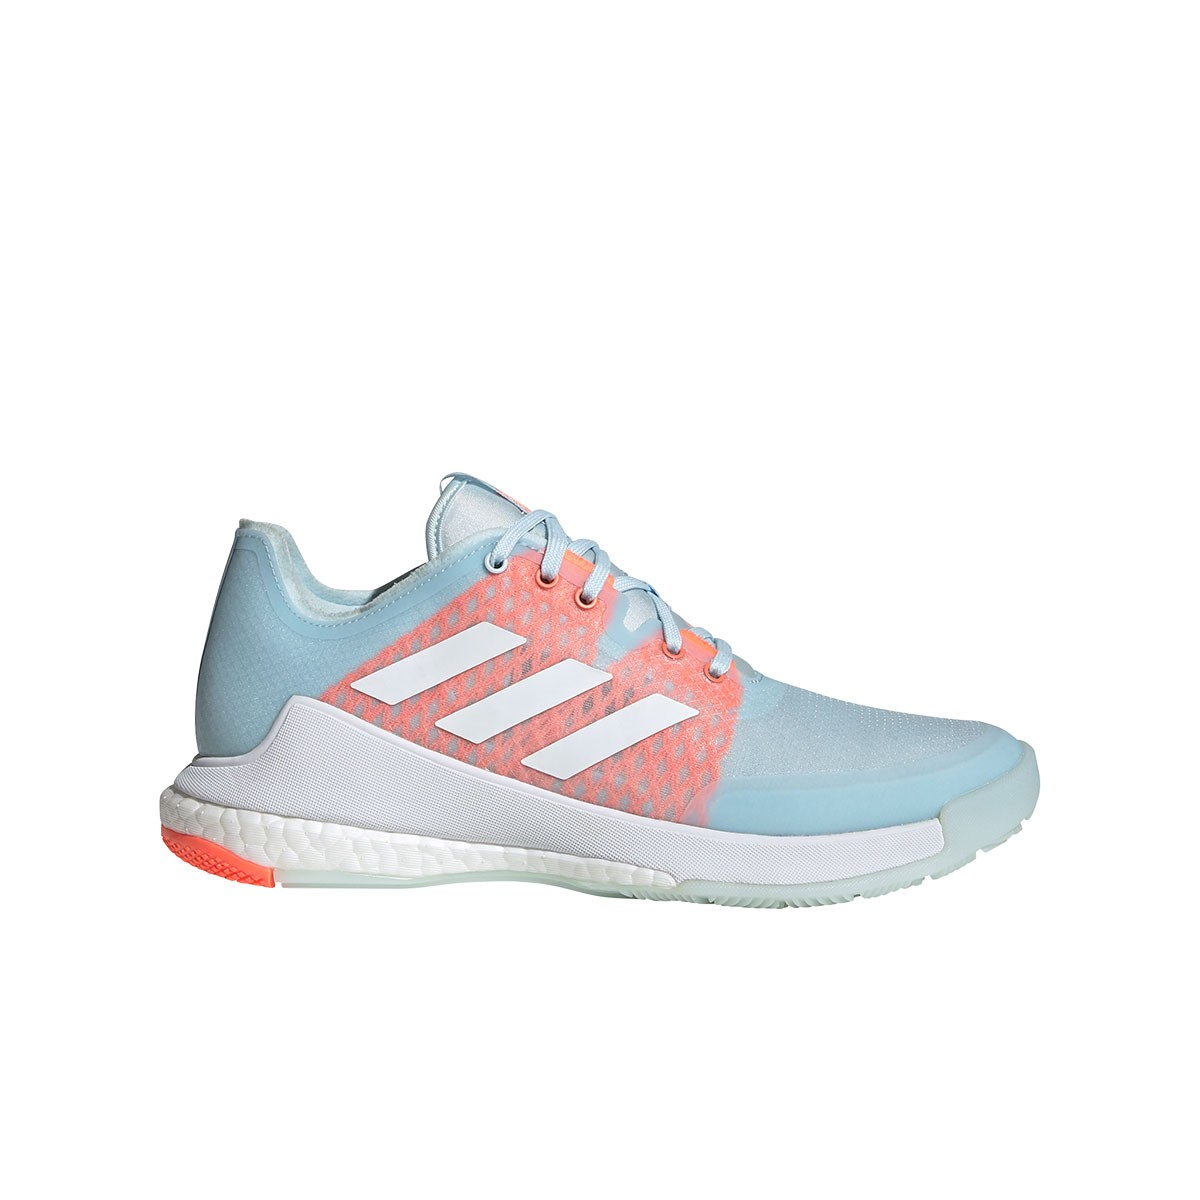 Adidas Crazyflight Sky Tint Cloud White